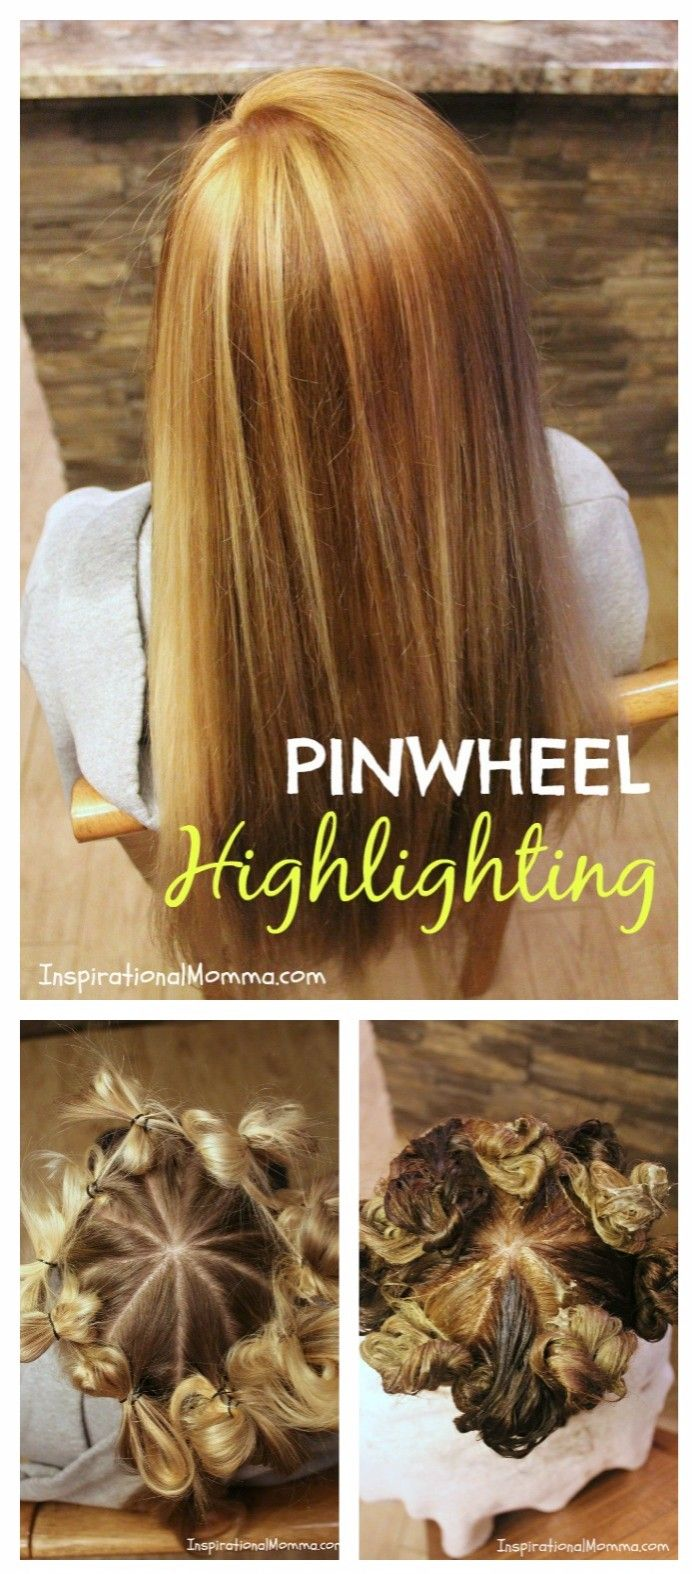 Pinwheel Highlighting - This simple technique guarantees you a natural highlighted look everytime. No experience needed to create a gorgeous salon look!